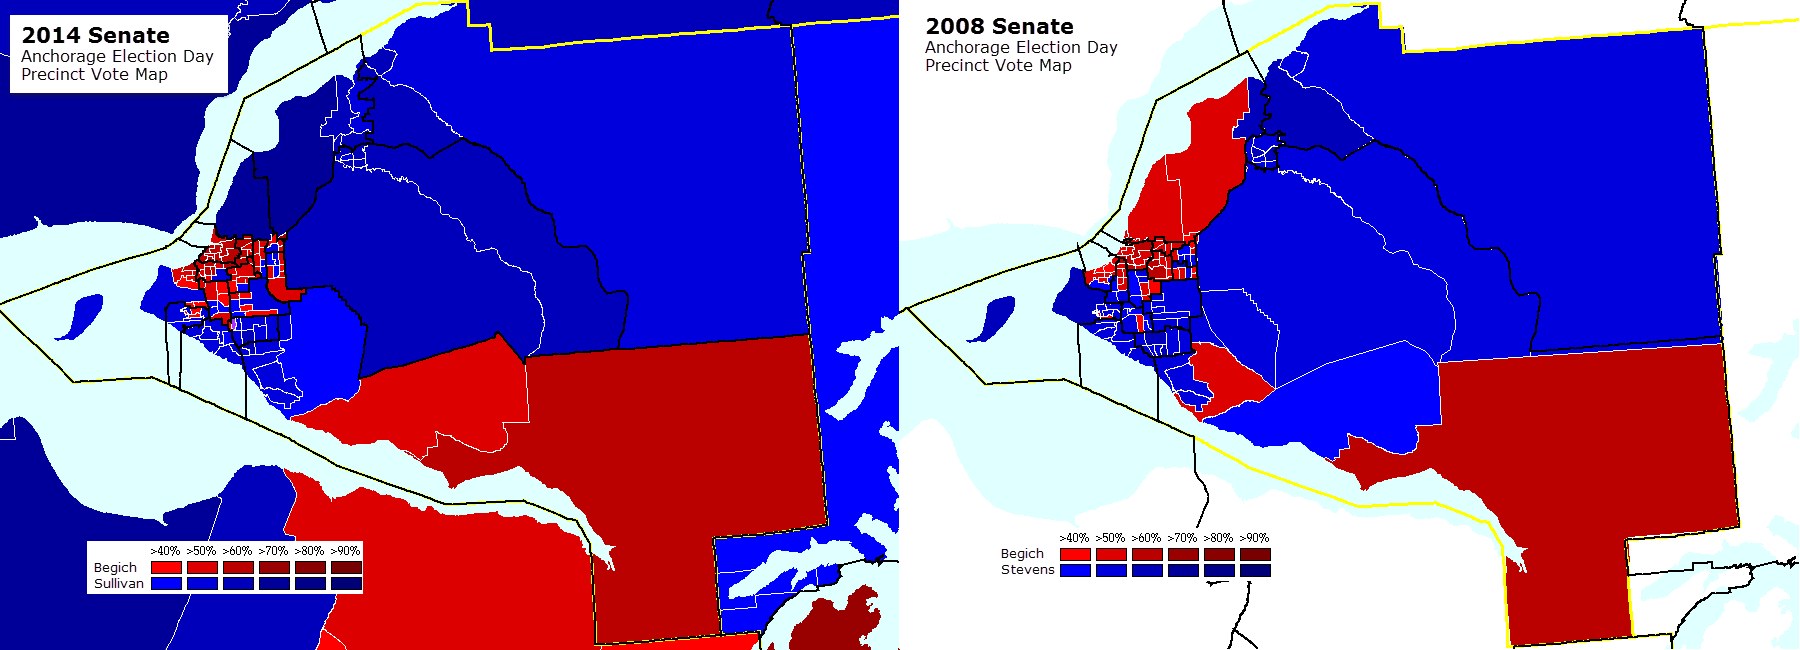 Mapping The 2014 Alaska Election Day Senate Precinct Vote